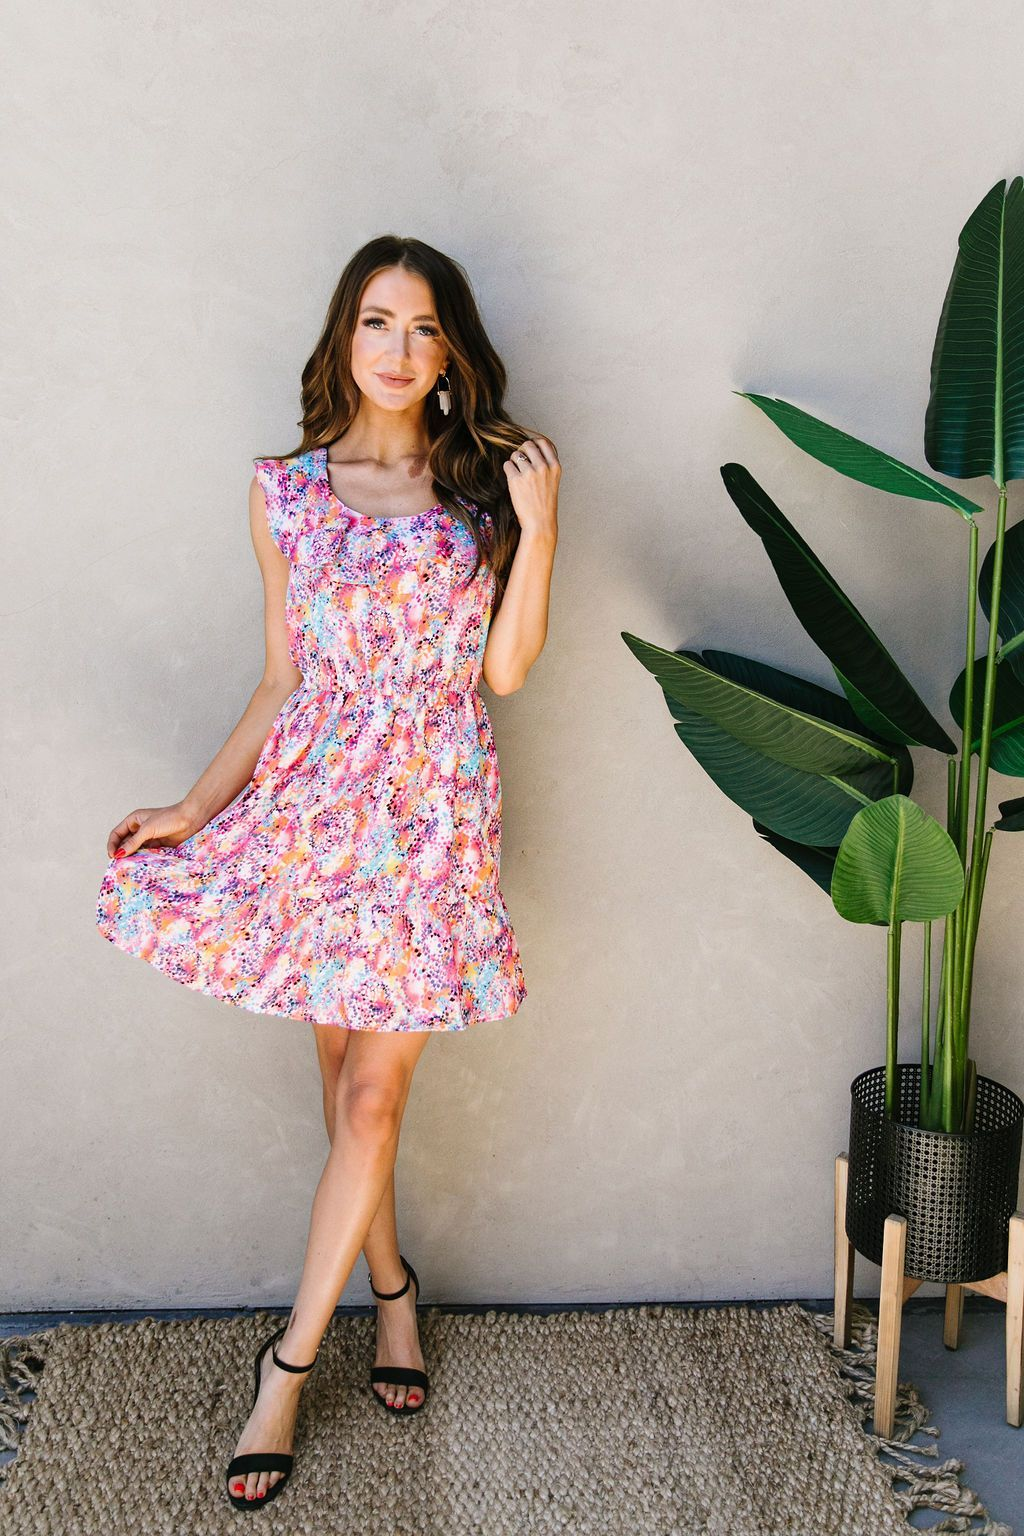 Darling Delight Dress - BeeLovely Boutique